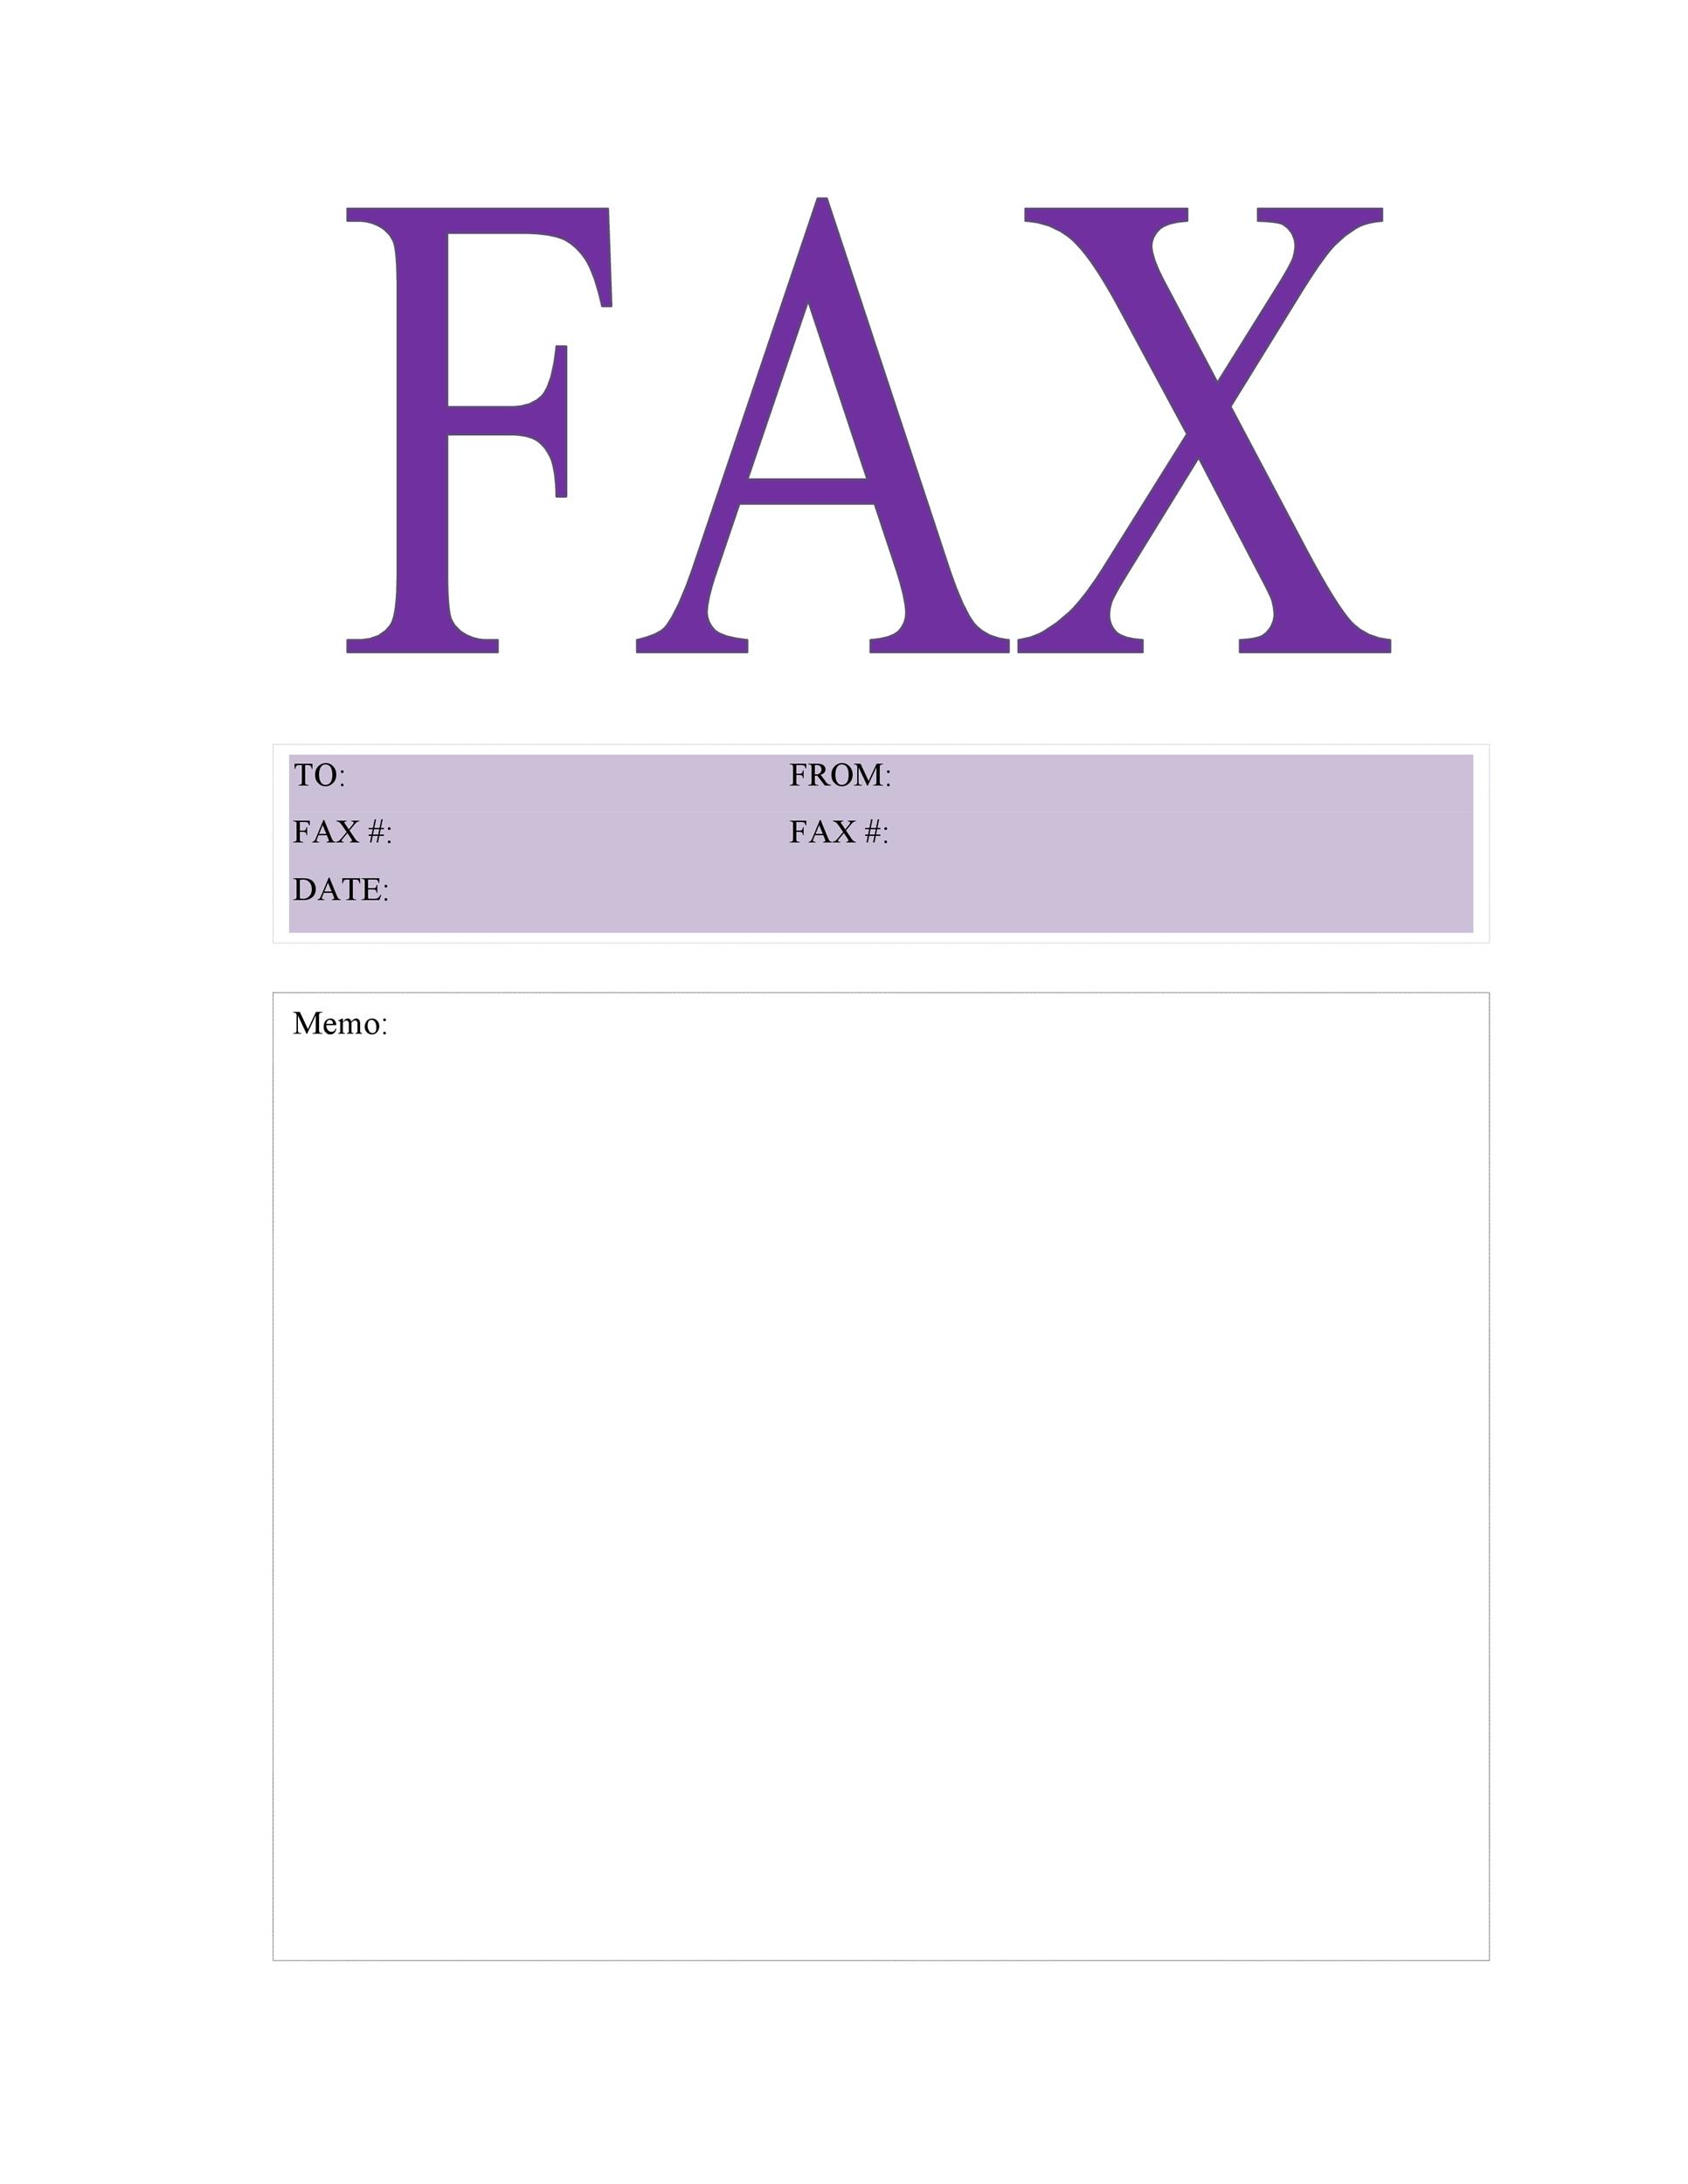 Fax Cover Sheets. Faxcover Fax Cover Sheet | Examples | Graphic